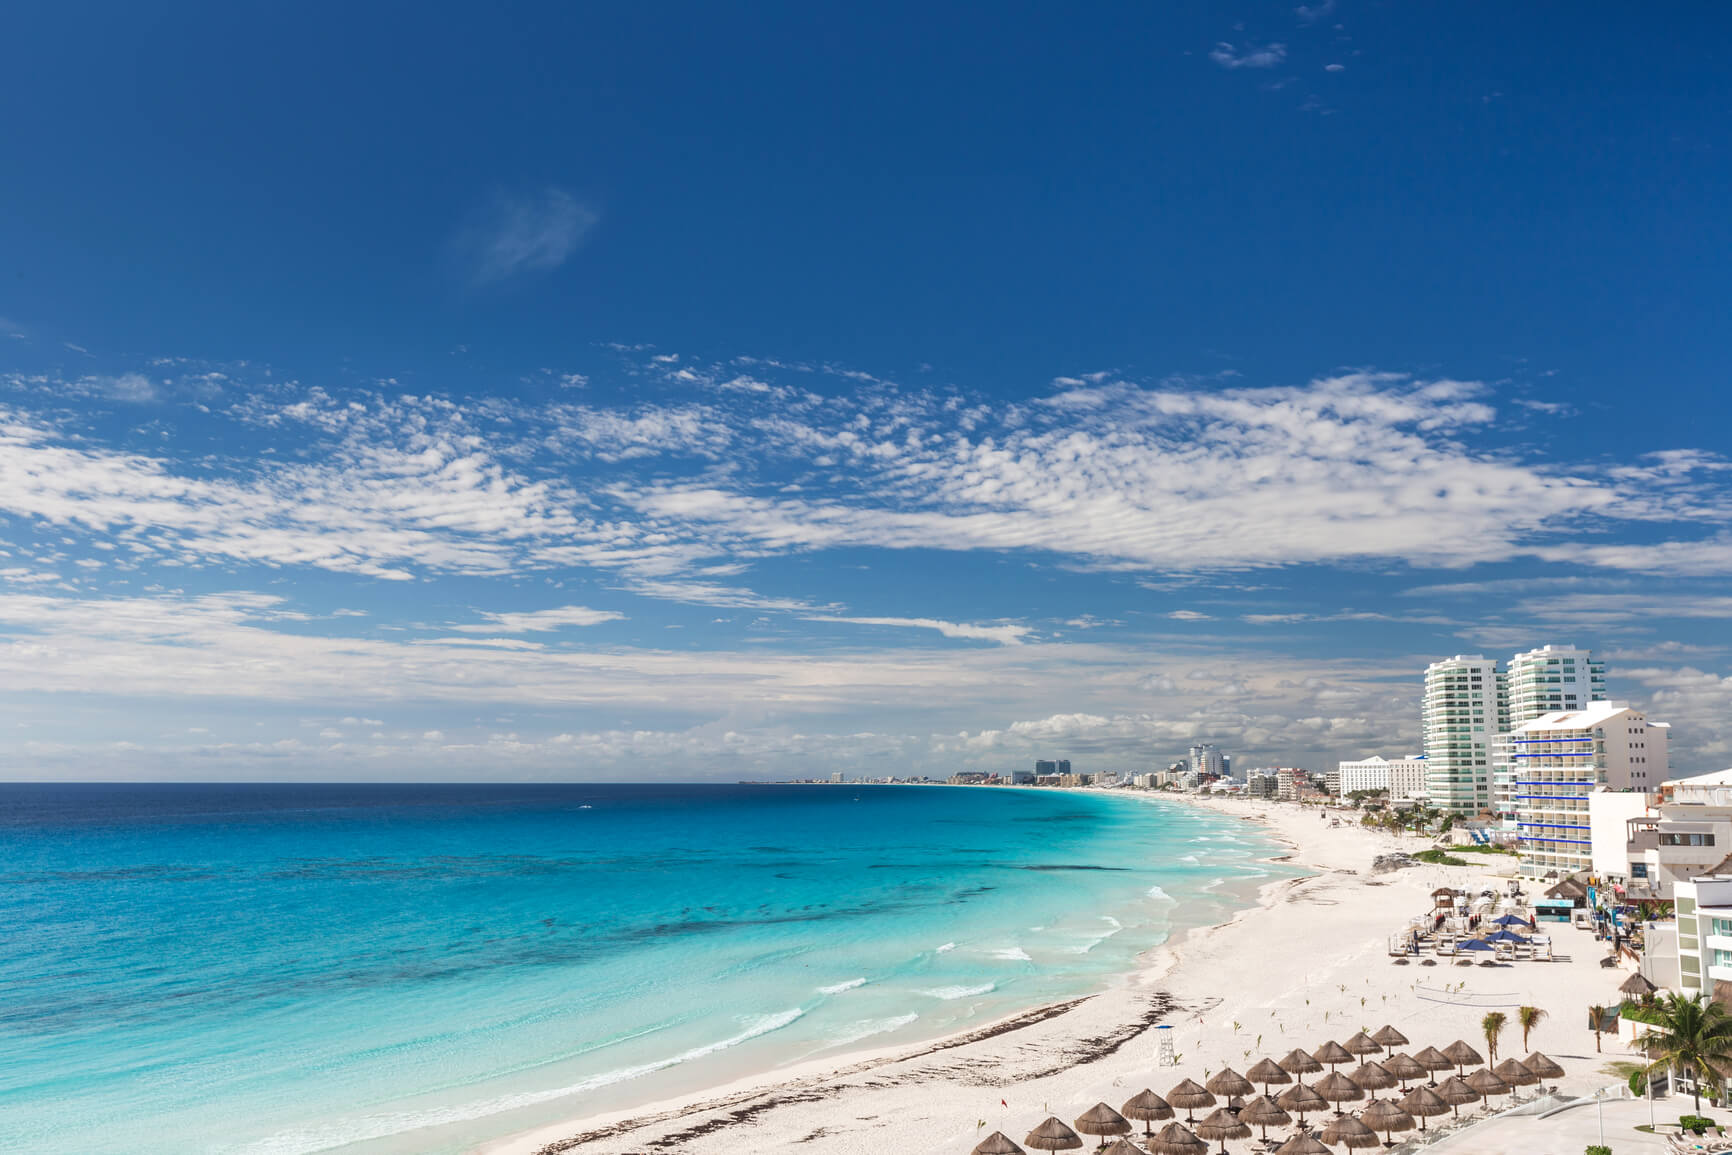 Pittsburgh to Cancun, Mexico for only $276 roundtrip (Sep-Nov dates)